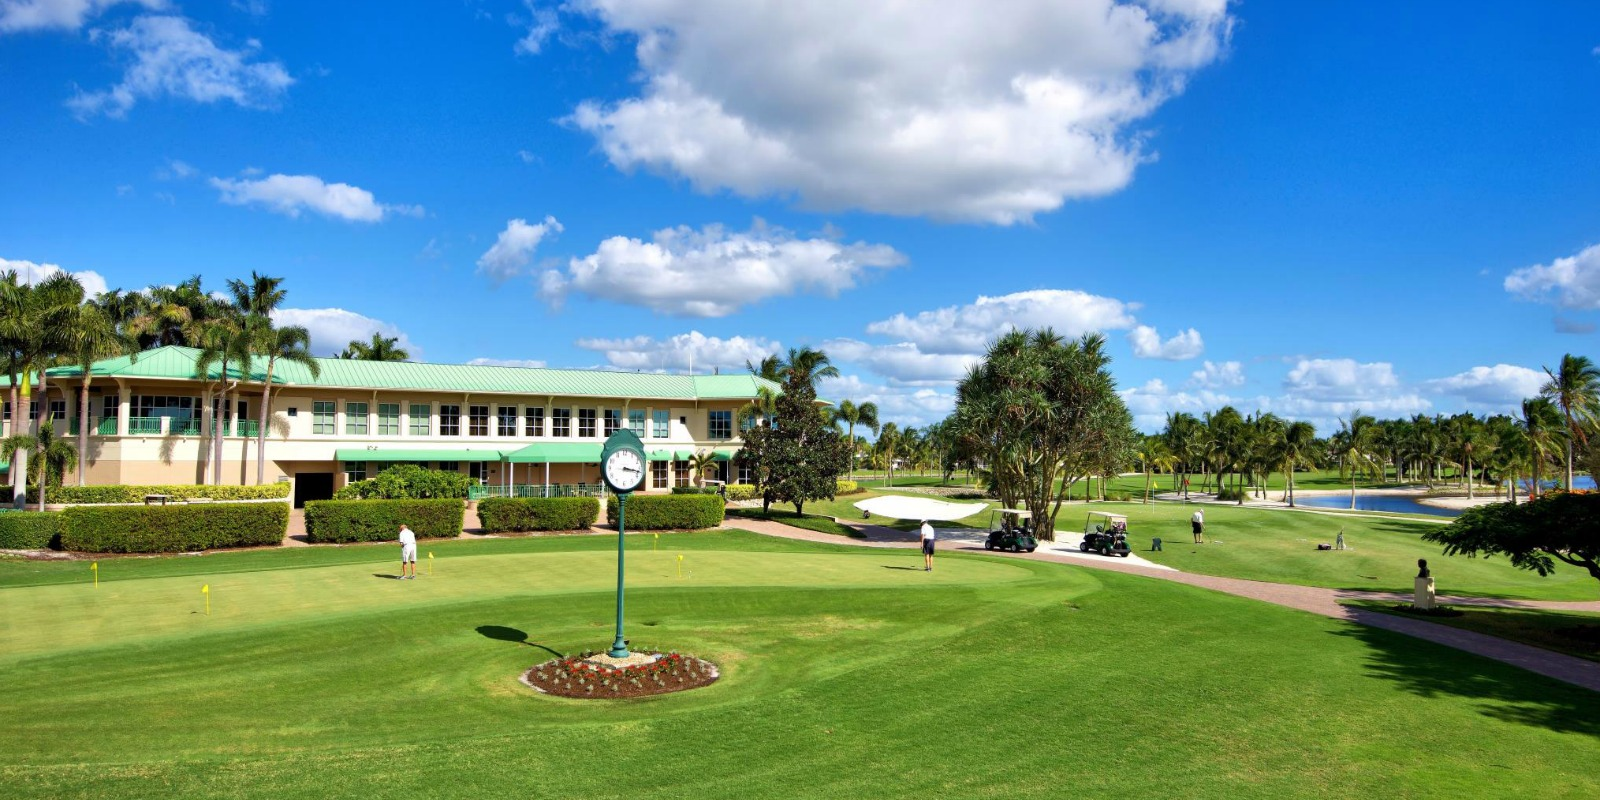 Overview of golf course named Island Country Club